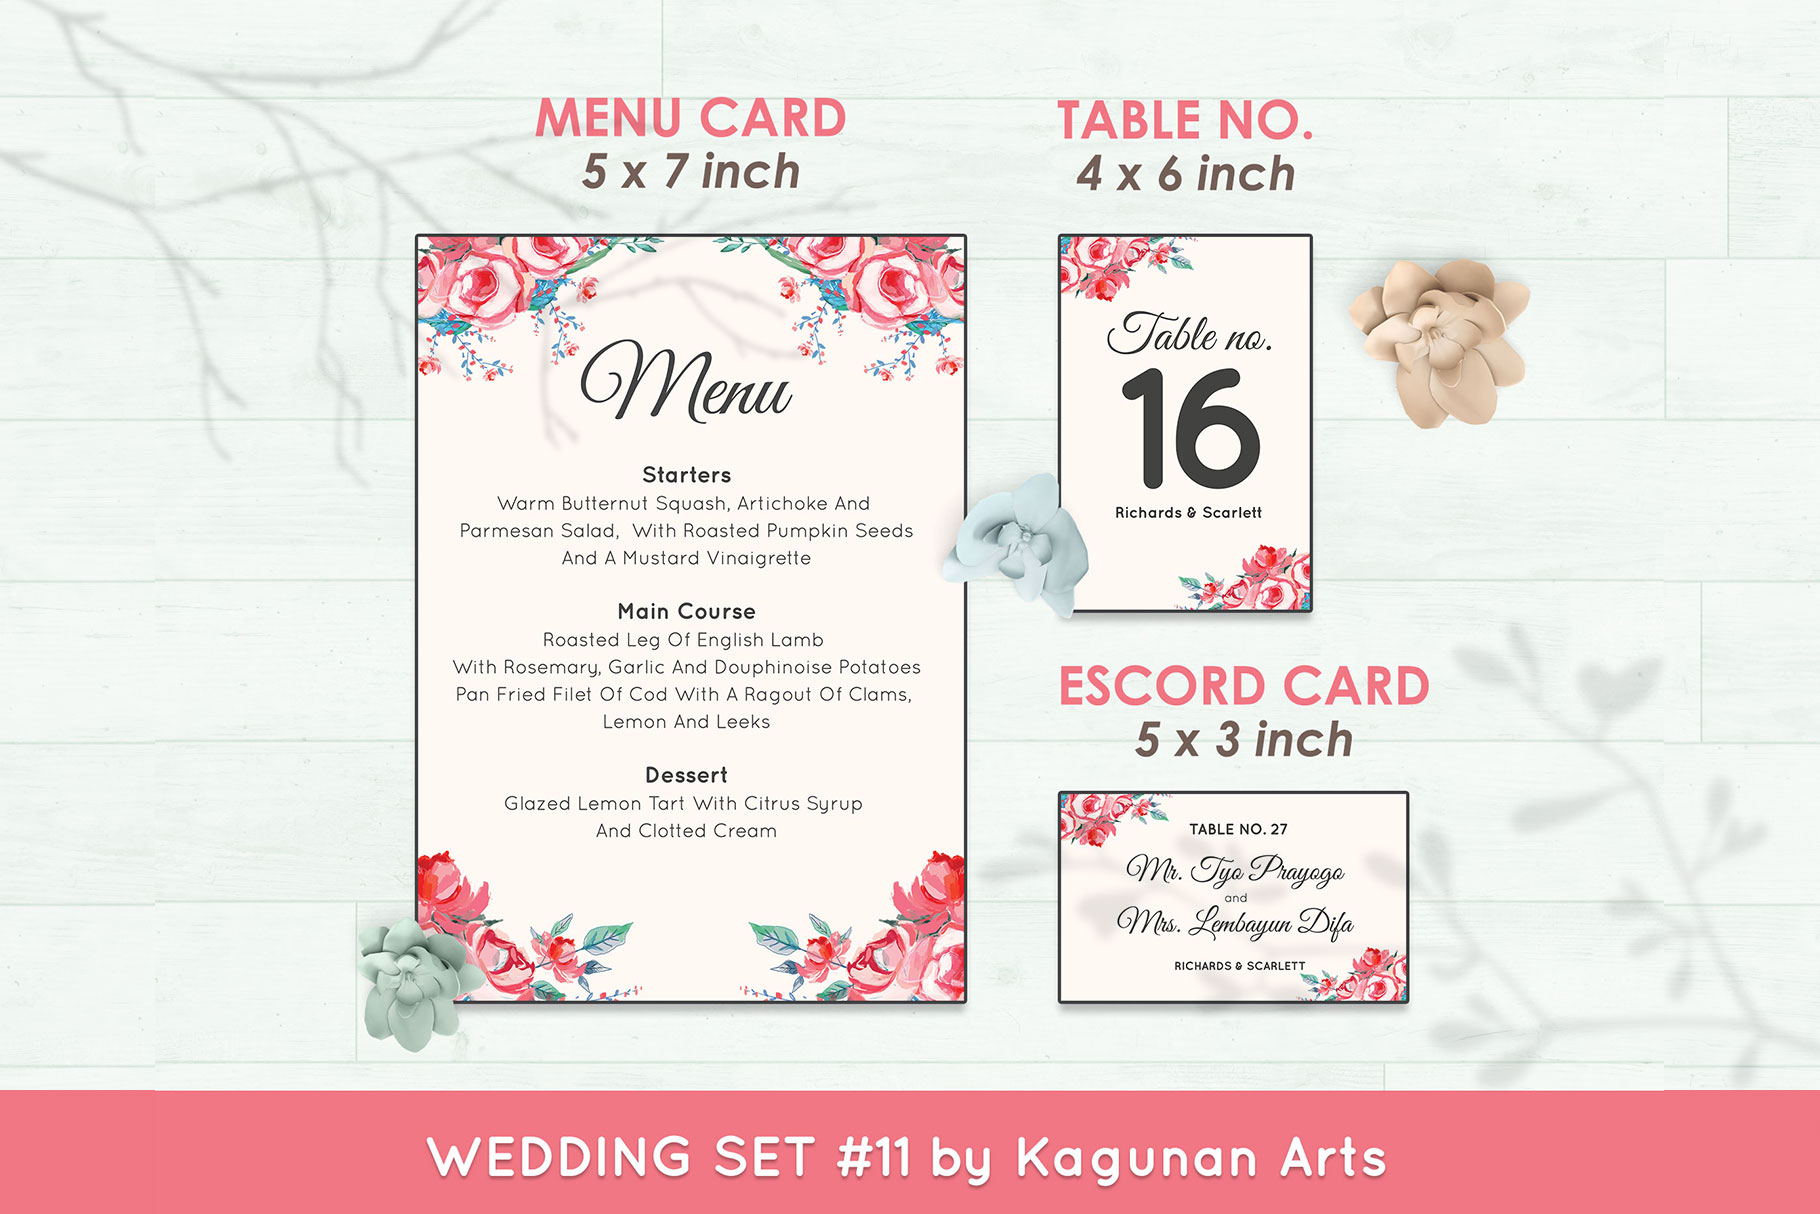 Wedding Invitation Set #11 Watercolor Floral Flower Style example image 6